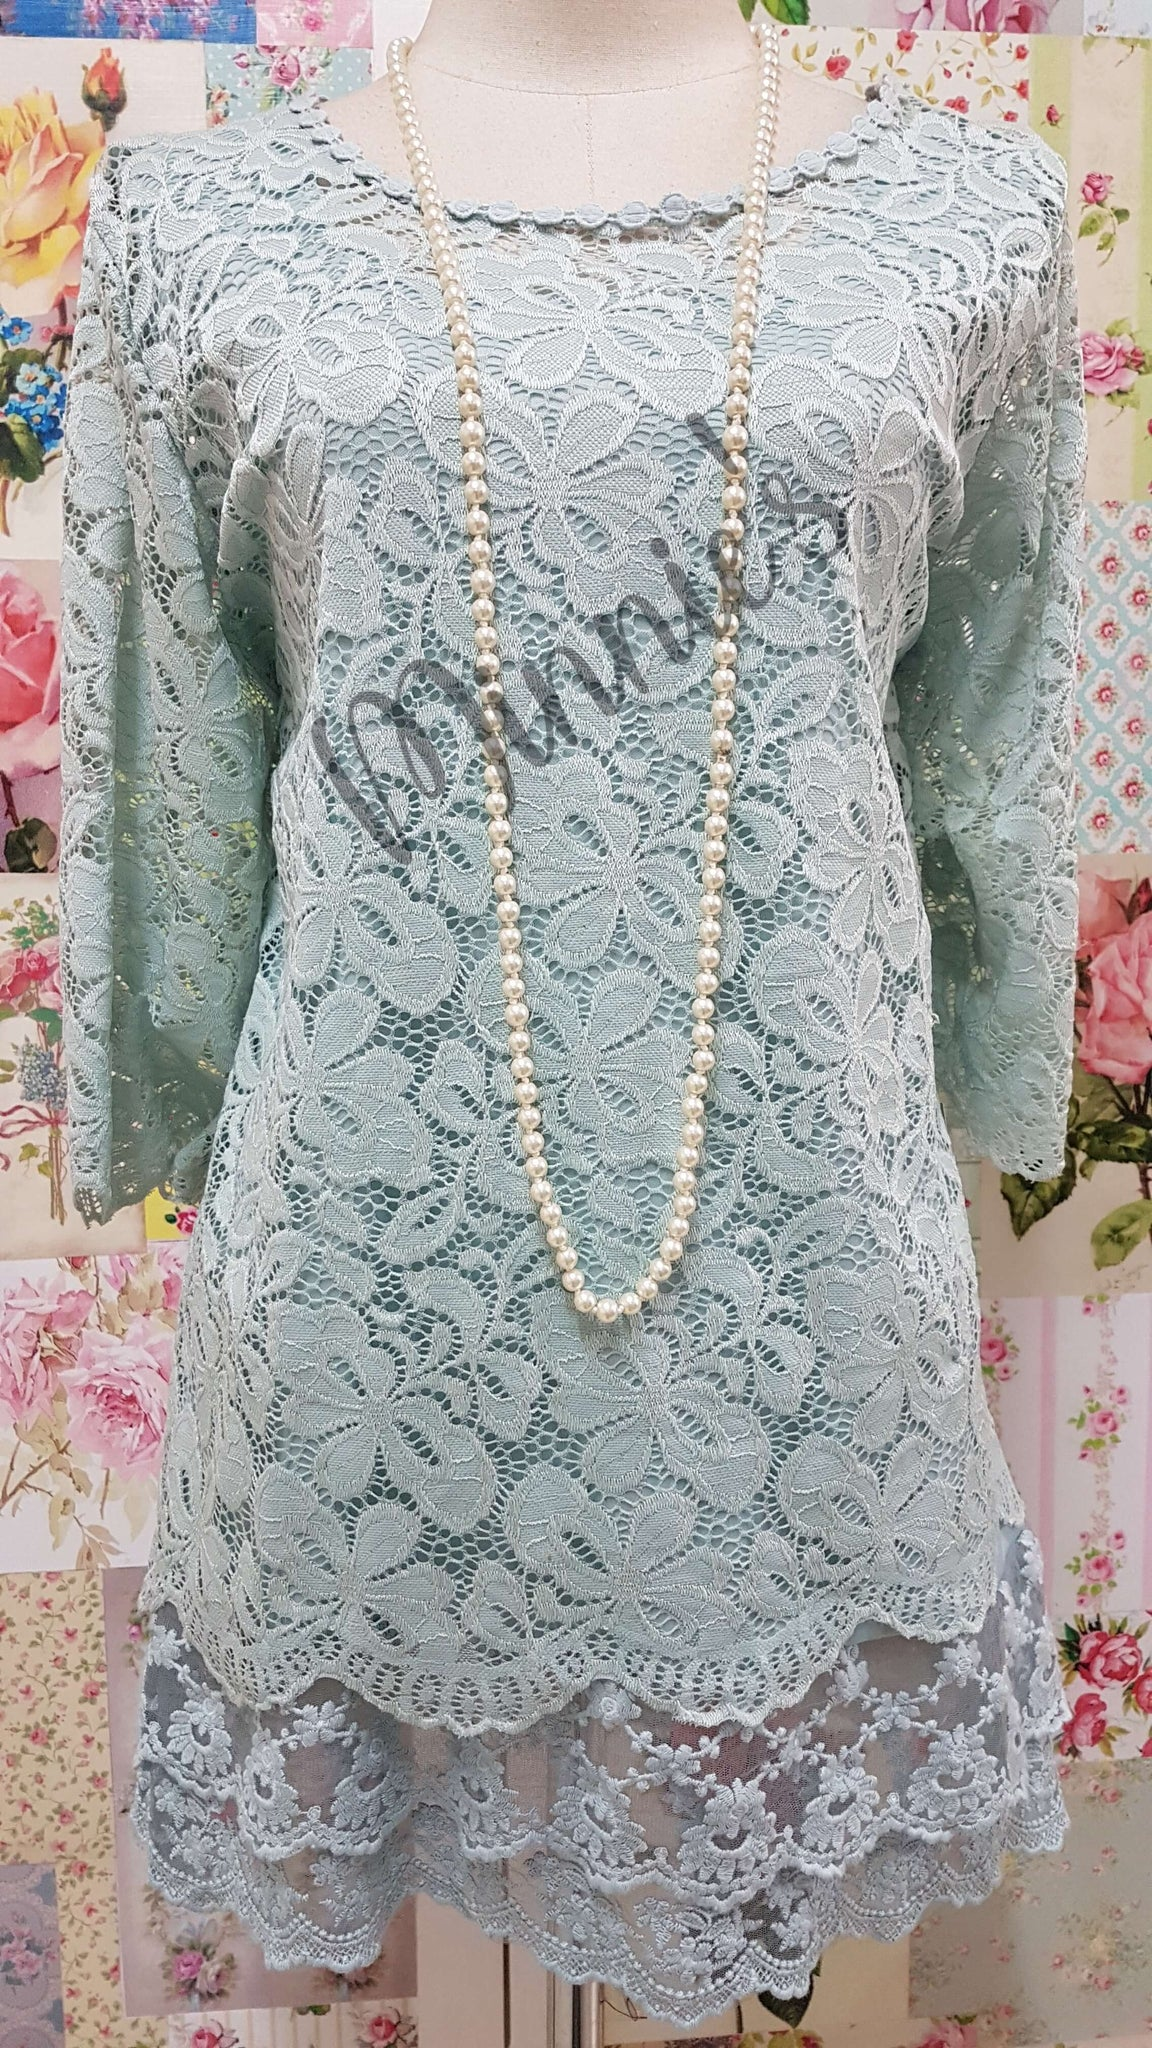 Duck Egg 2-Piece Lace Top SZ033